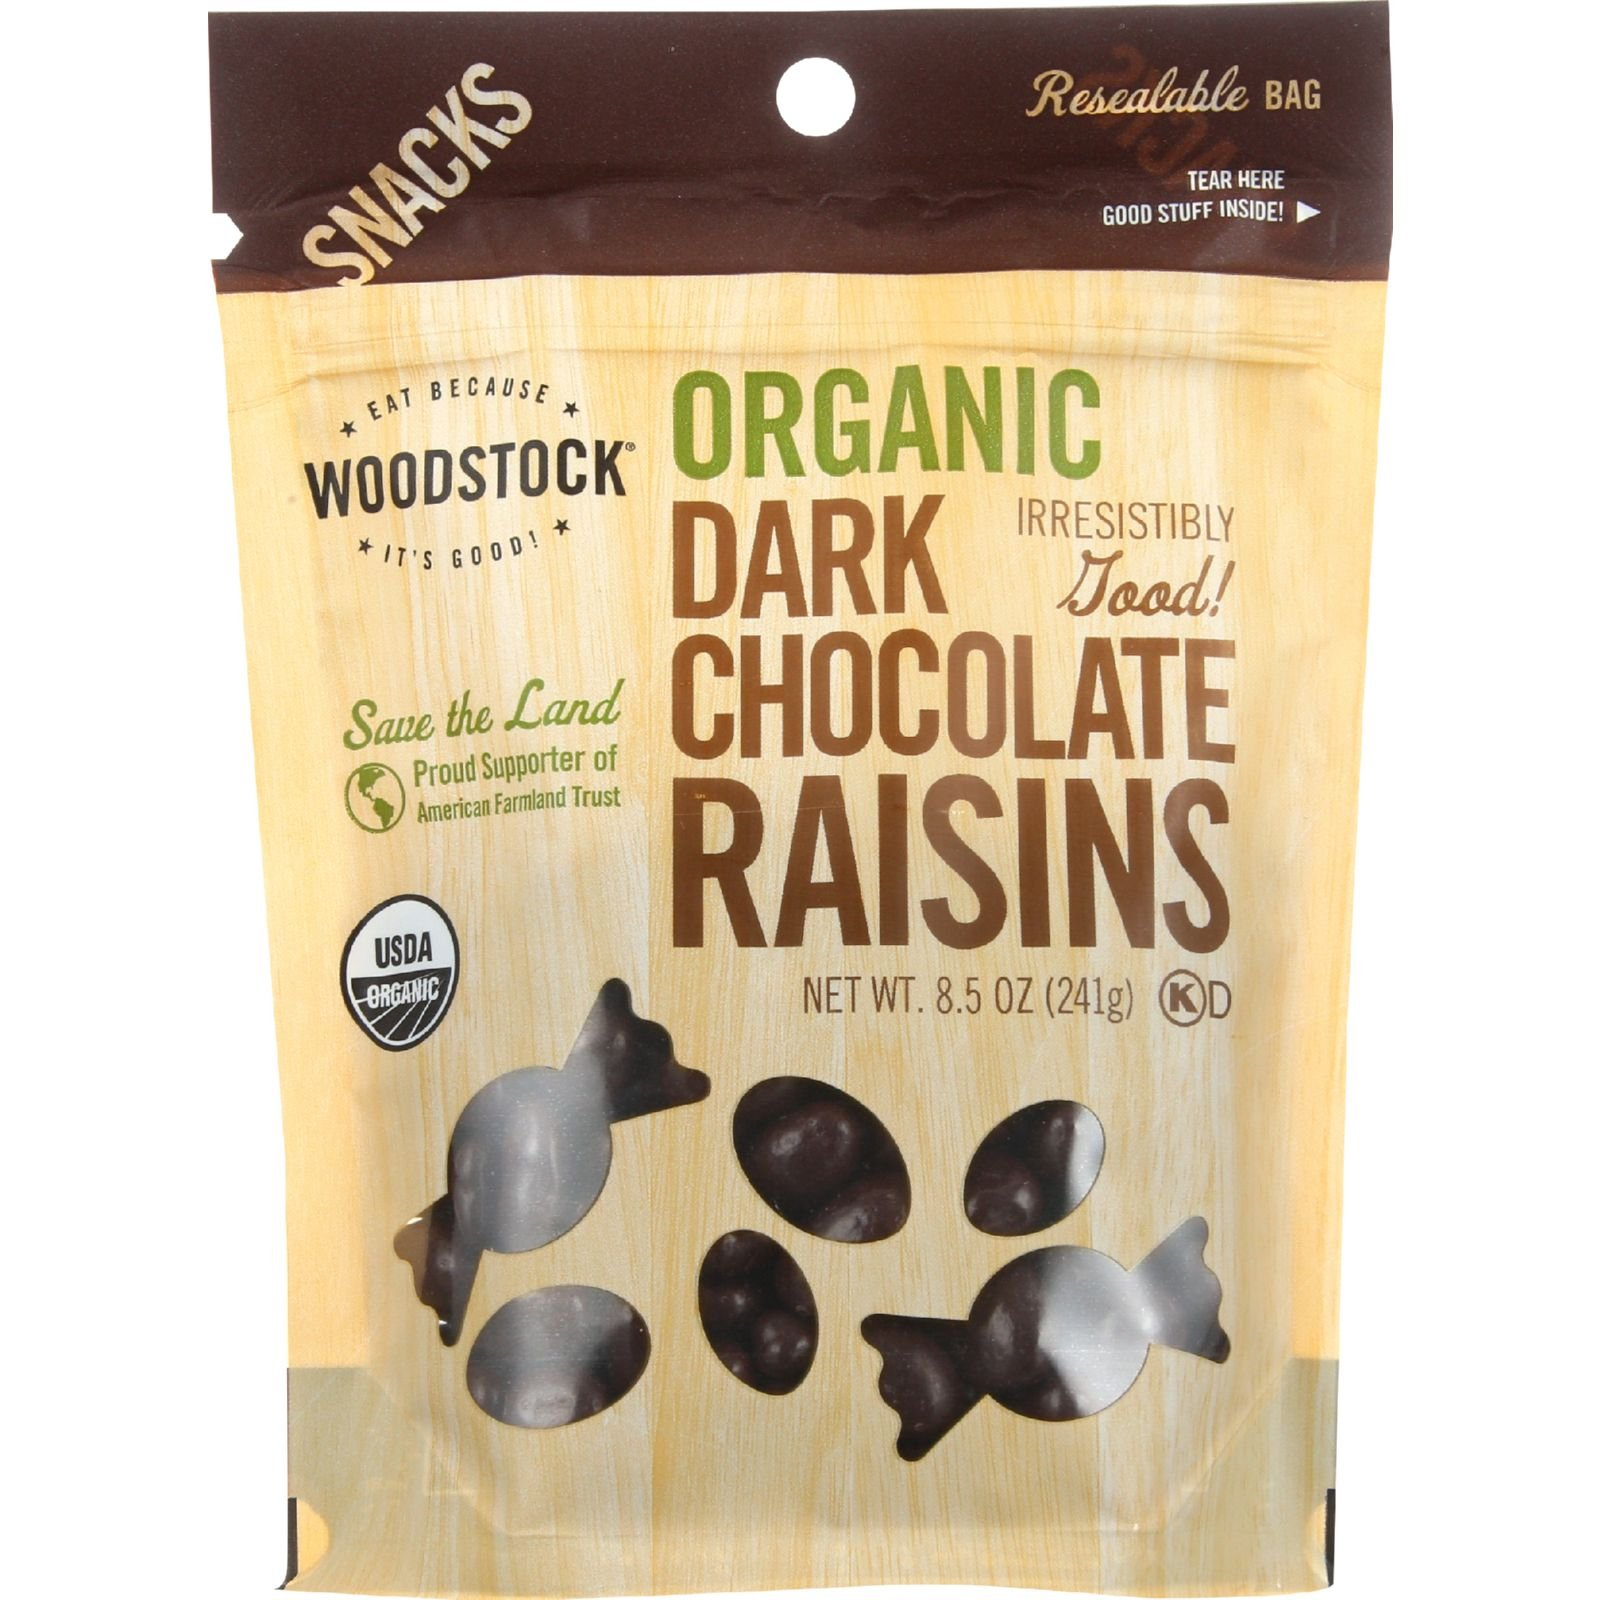 Woodstock Snacks - Organic - Dark Chocolate Raisins - 8.5 oz - case of 8 - 95%+ Organic - Vegan